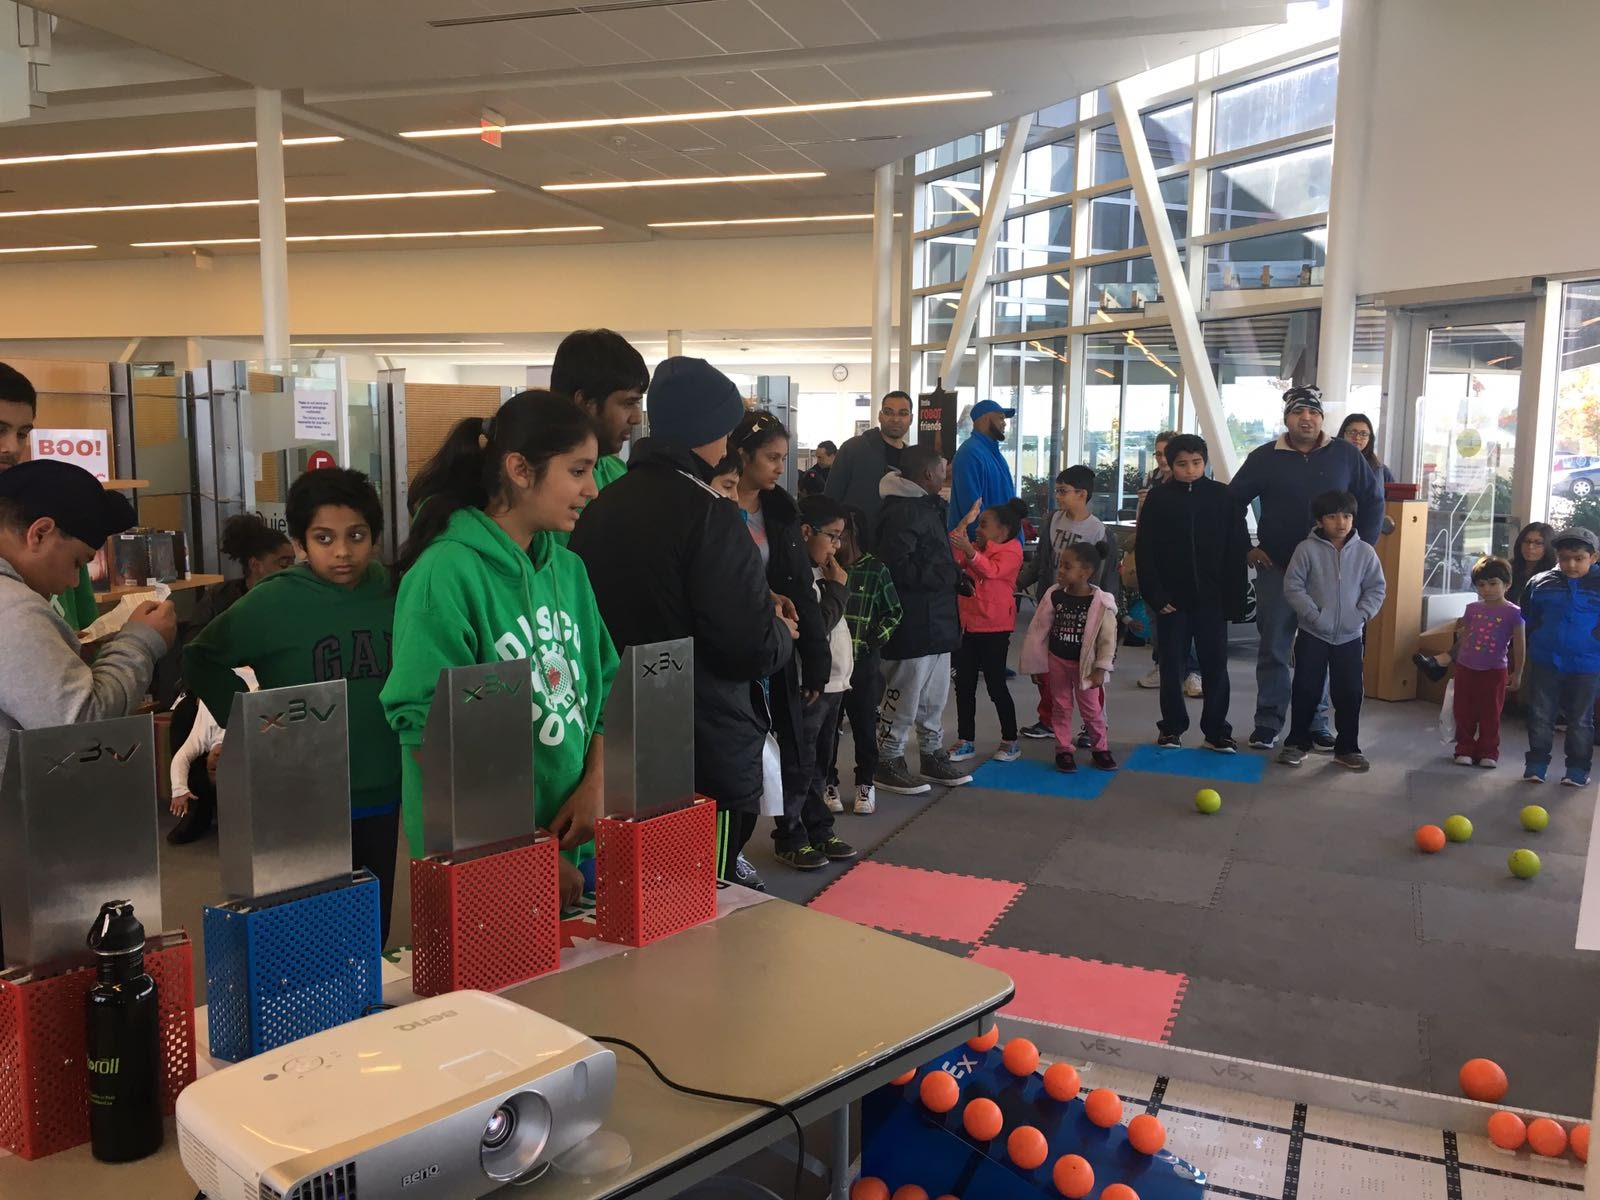 Our Team having a build session with kids from our community, to promote STEM